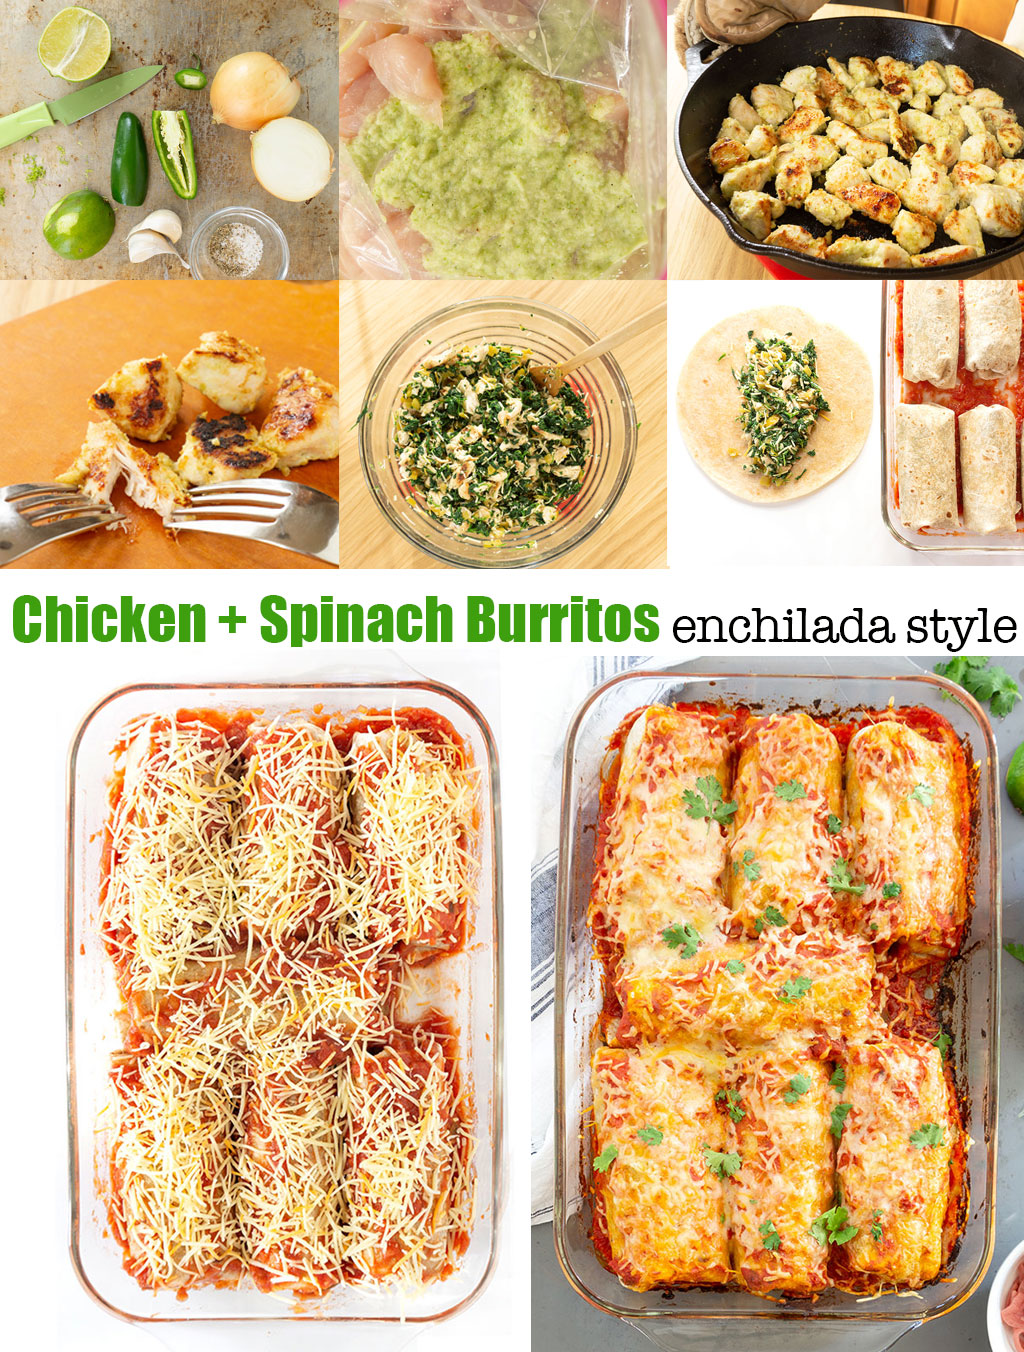 Step by Step Photos for Making Chicken and Spinach Burritos